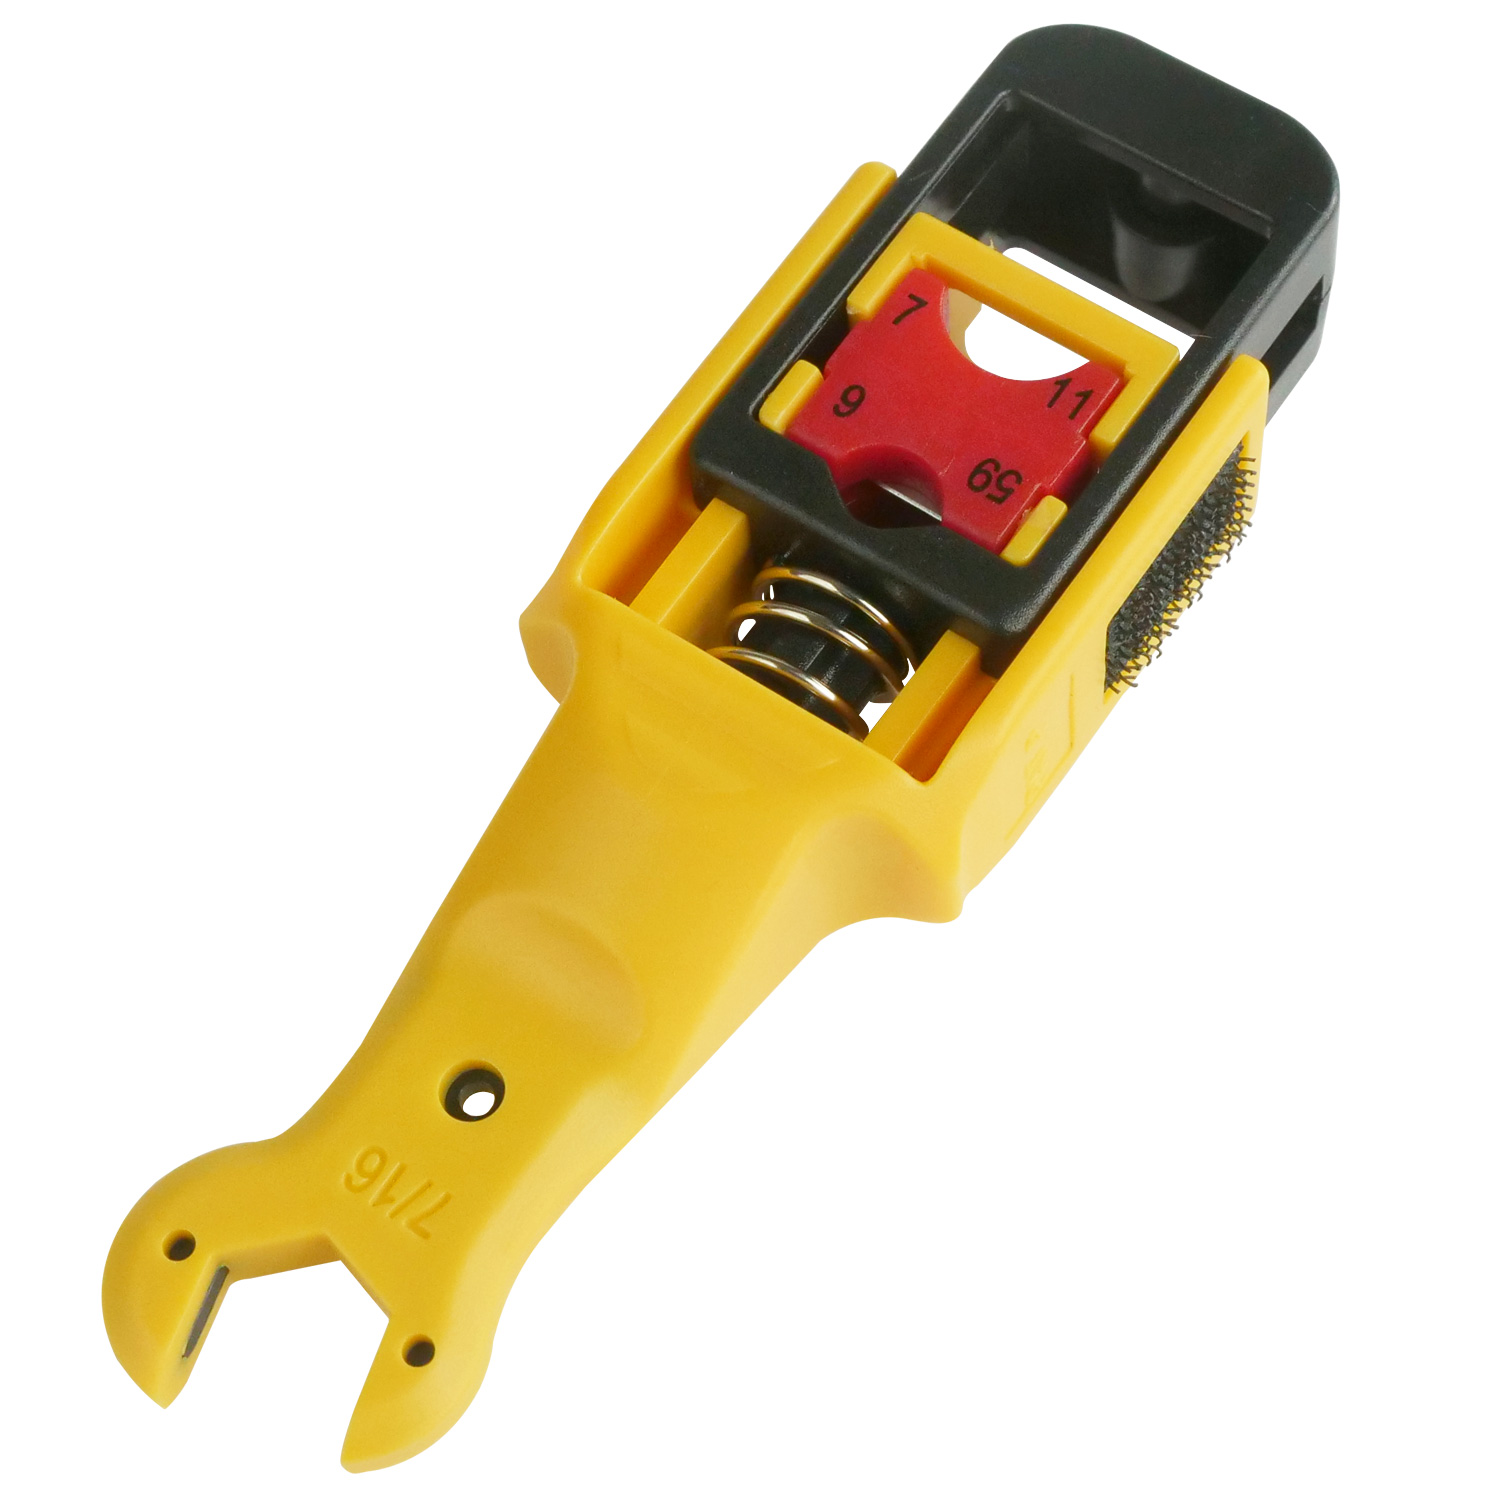 RG59 / RG6 / RG7 2 Blade Coaxial Stripper with Wrench